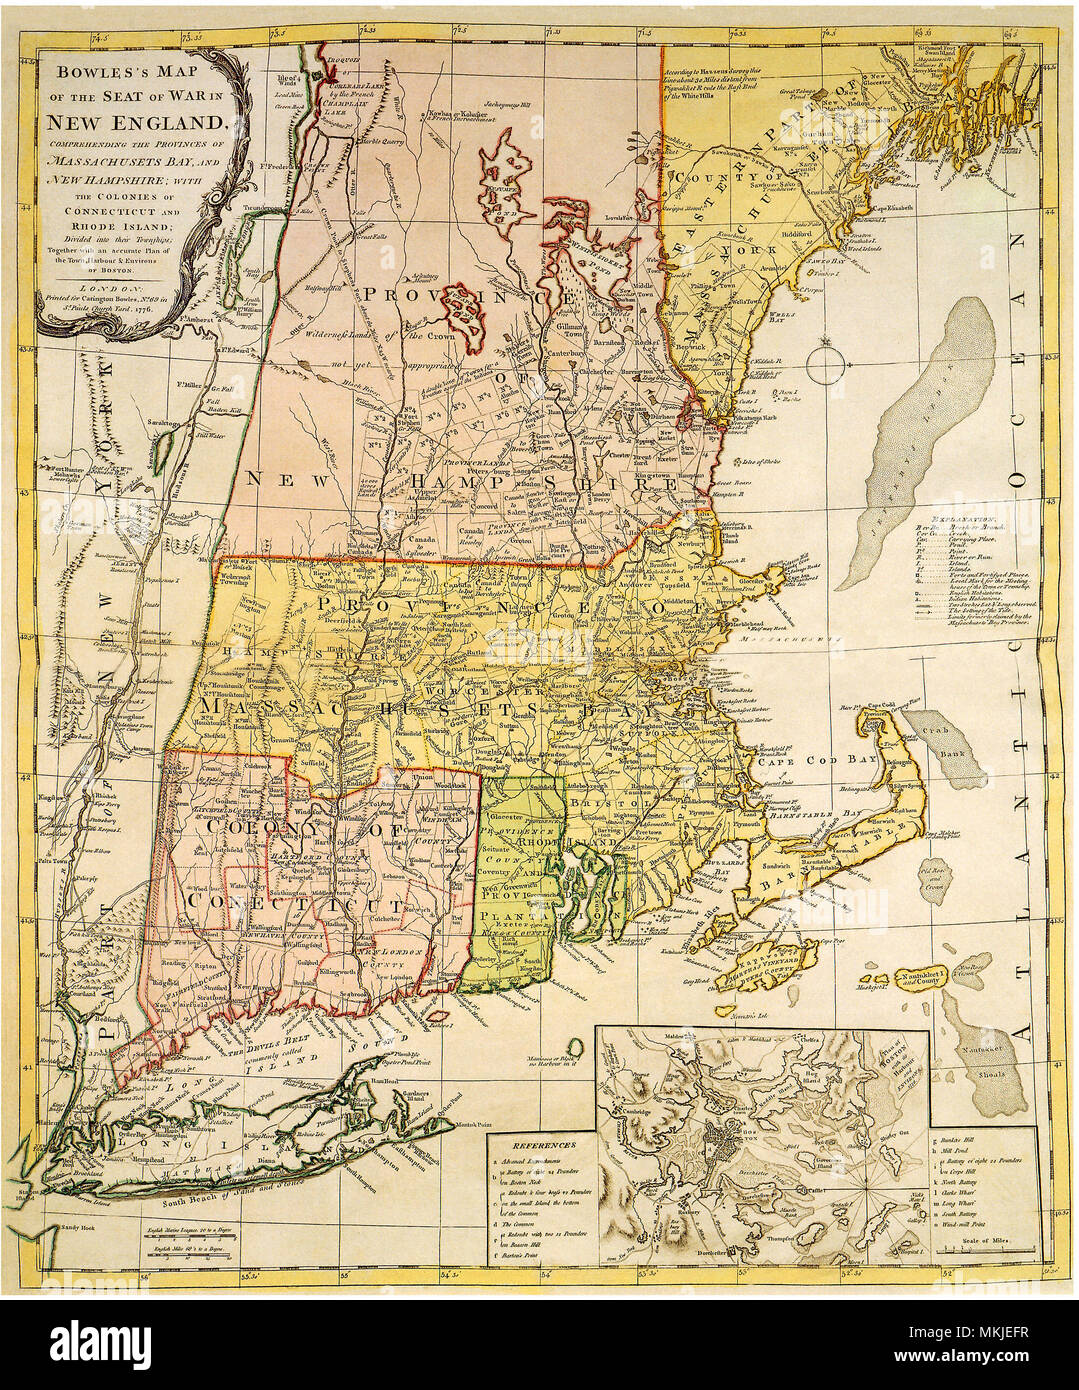 Map of New England 1776 Stock Photo: 184188699 - Alamy Map Of New England on map of long island 1776, map of north america 1776, map of nantucket 1776, map of manhattan 1776, map of africa 1776, map of germany 1776, map of great britain 1776, map of american colonies 1776, map of mexico 1776, map of united states 1776, map of texas 1776, map of dorchester heights 1776, map of california 1776, map of massachusetts 1776, map of philadelphia 1776, map of alaska 1776, map of canada 1776, map of russia 1776, map of trenton 1776, map of virginia 1776,